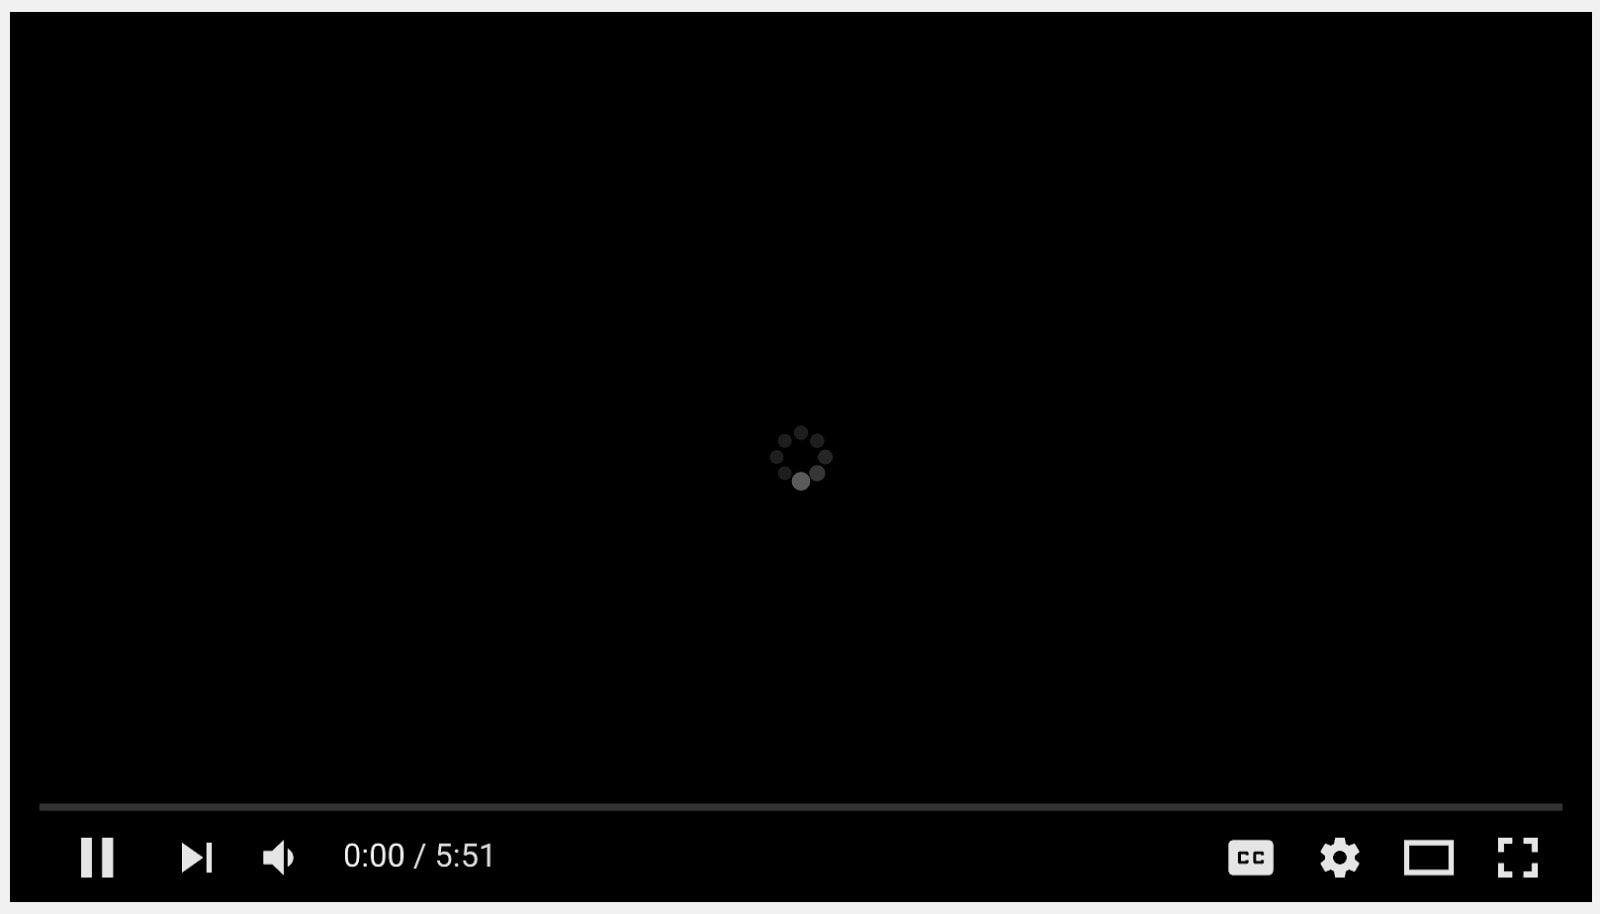 youtube video not playing